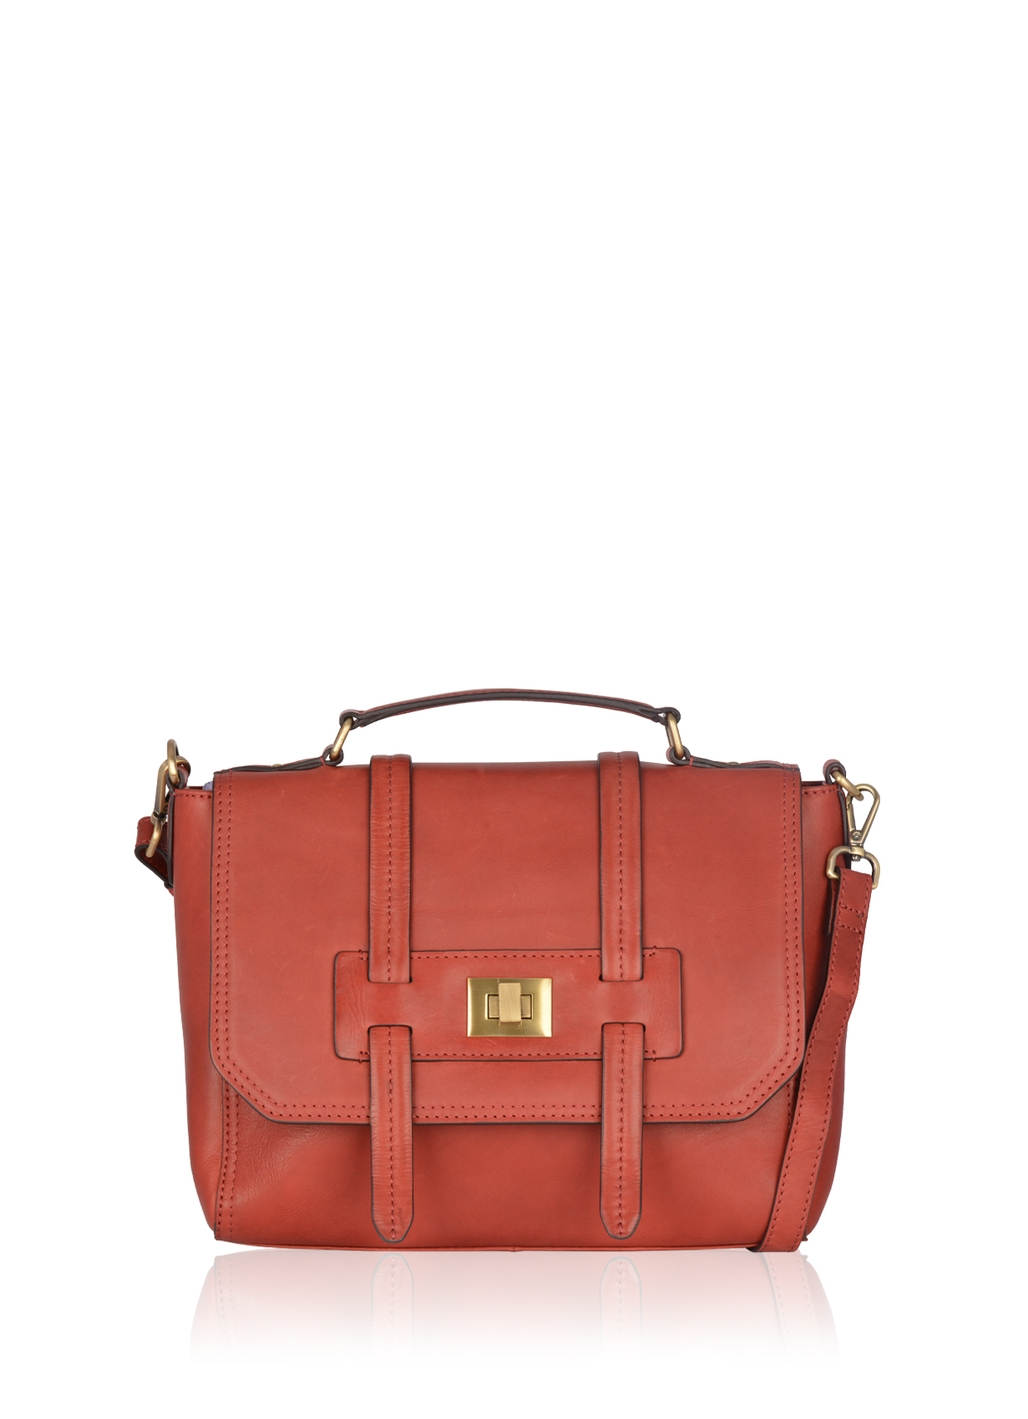 Brampton Leather Flapover Satchel Bag in Red